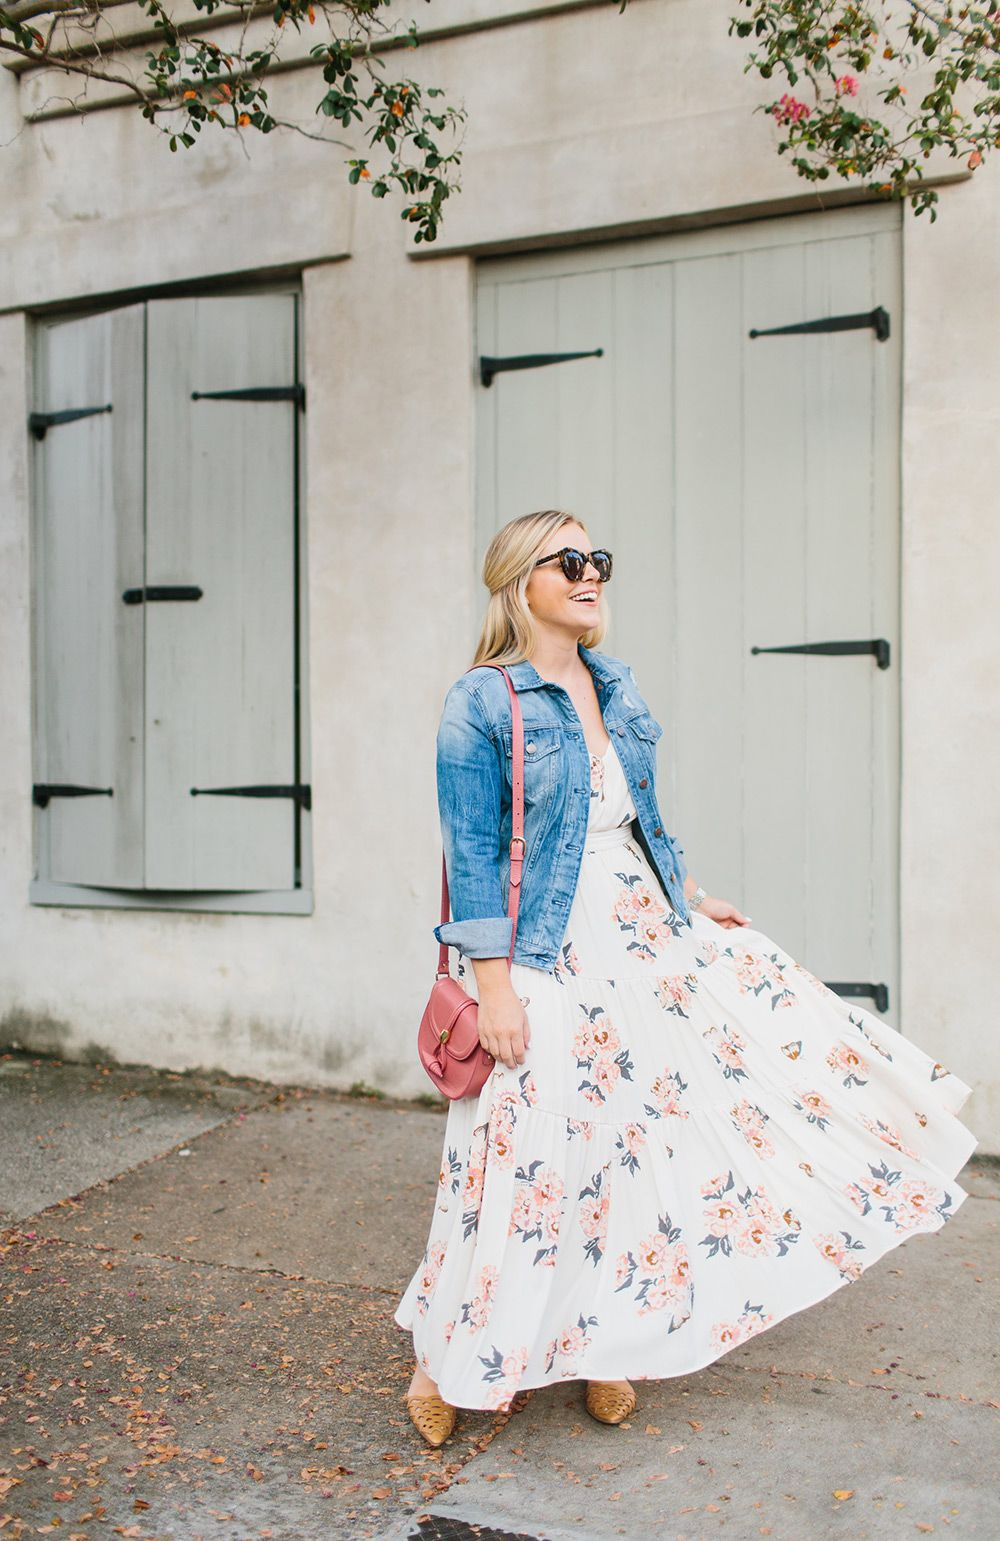 Summer Dress Transitioned To Fall With Denim Jacket Color By K Little White Dresses Fashion Floral Skirt [ 1541 x 1000 Pixel ]